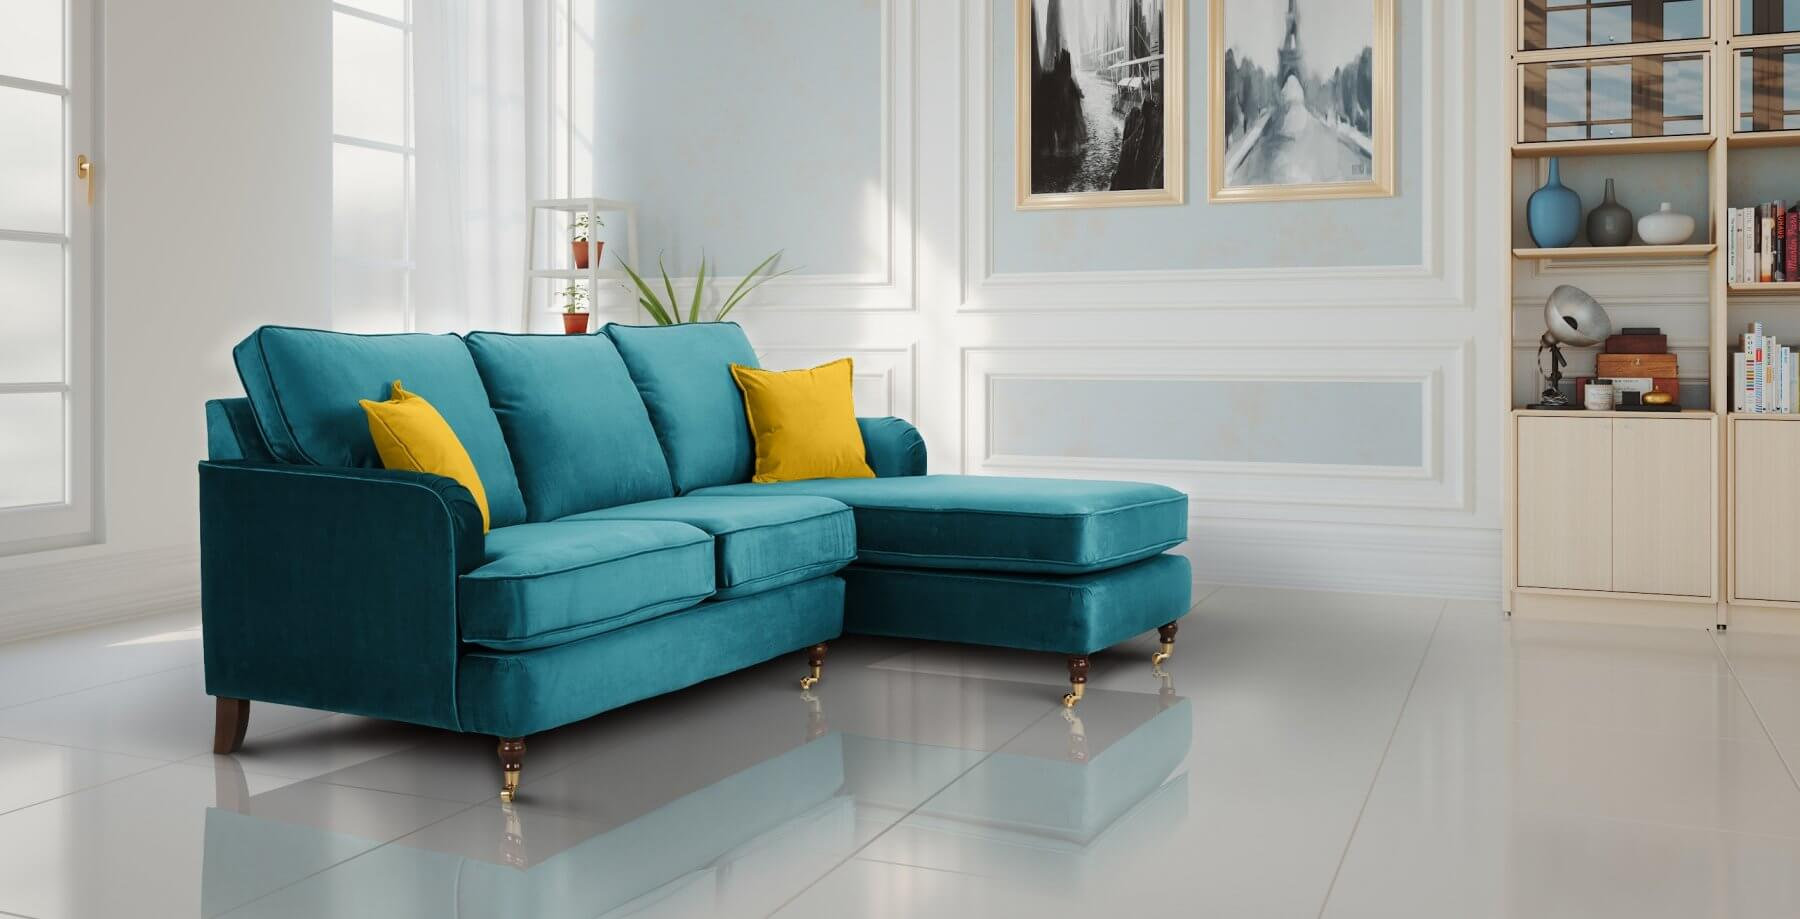 Turquoise Velvet 3 Seater With Chaise Lounge Astbury Sofa